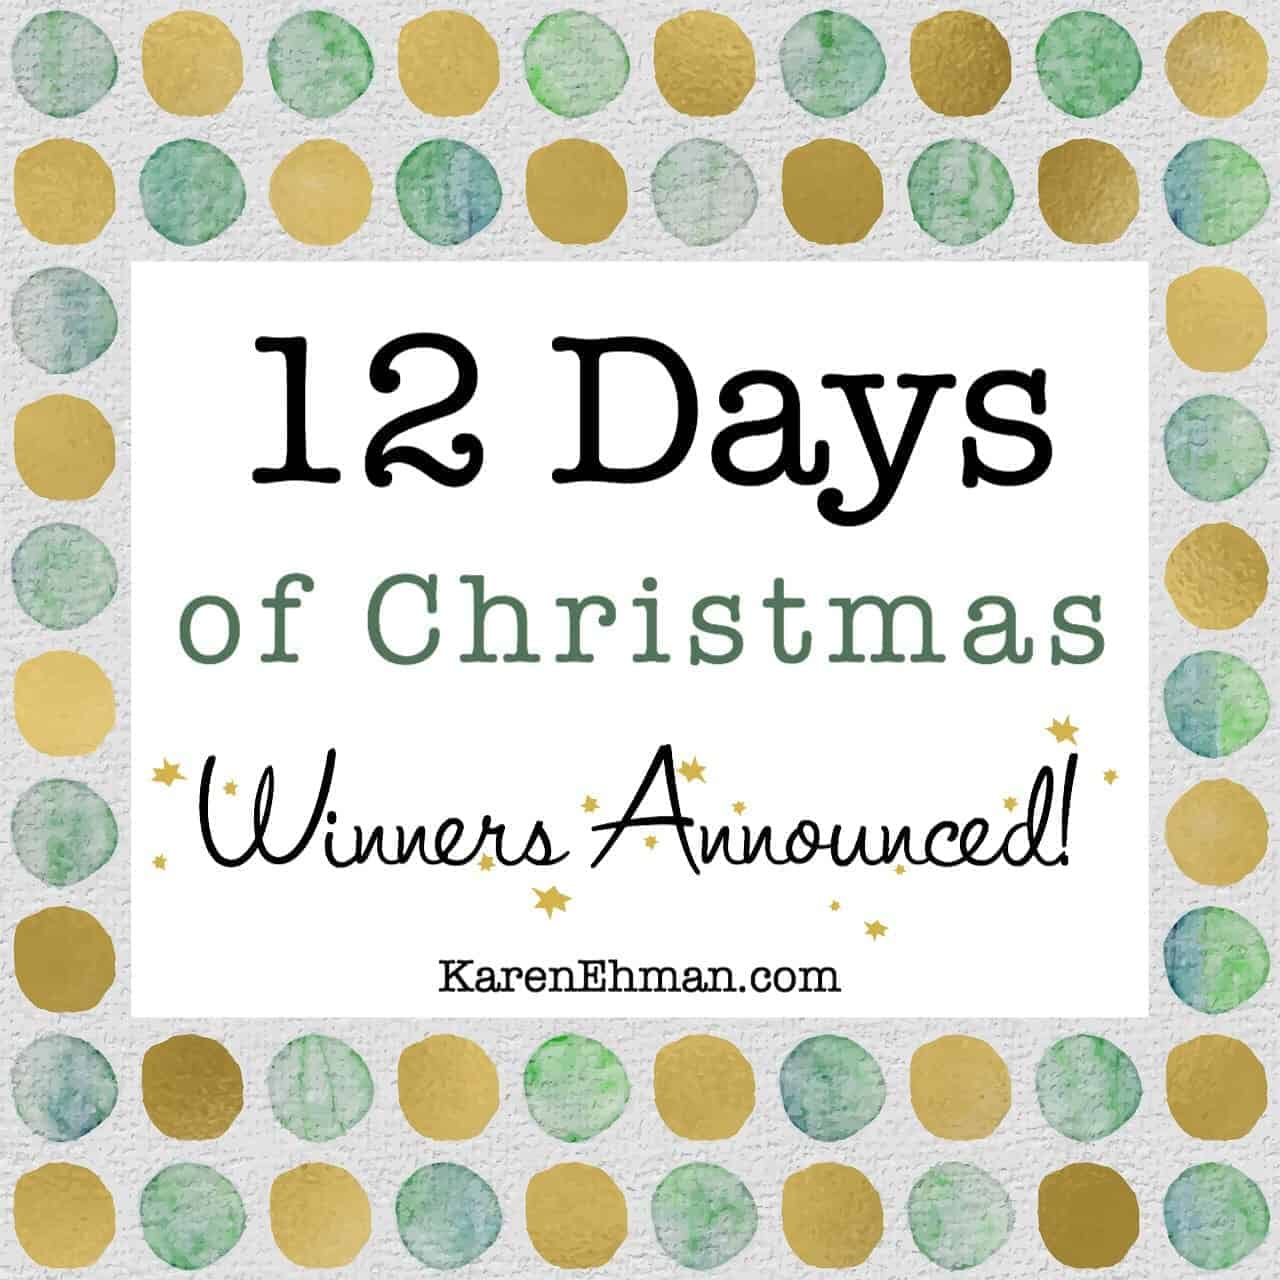 Winners Announced - 12 Days of Christmas Giveaways at karenehman.com.